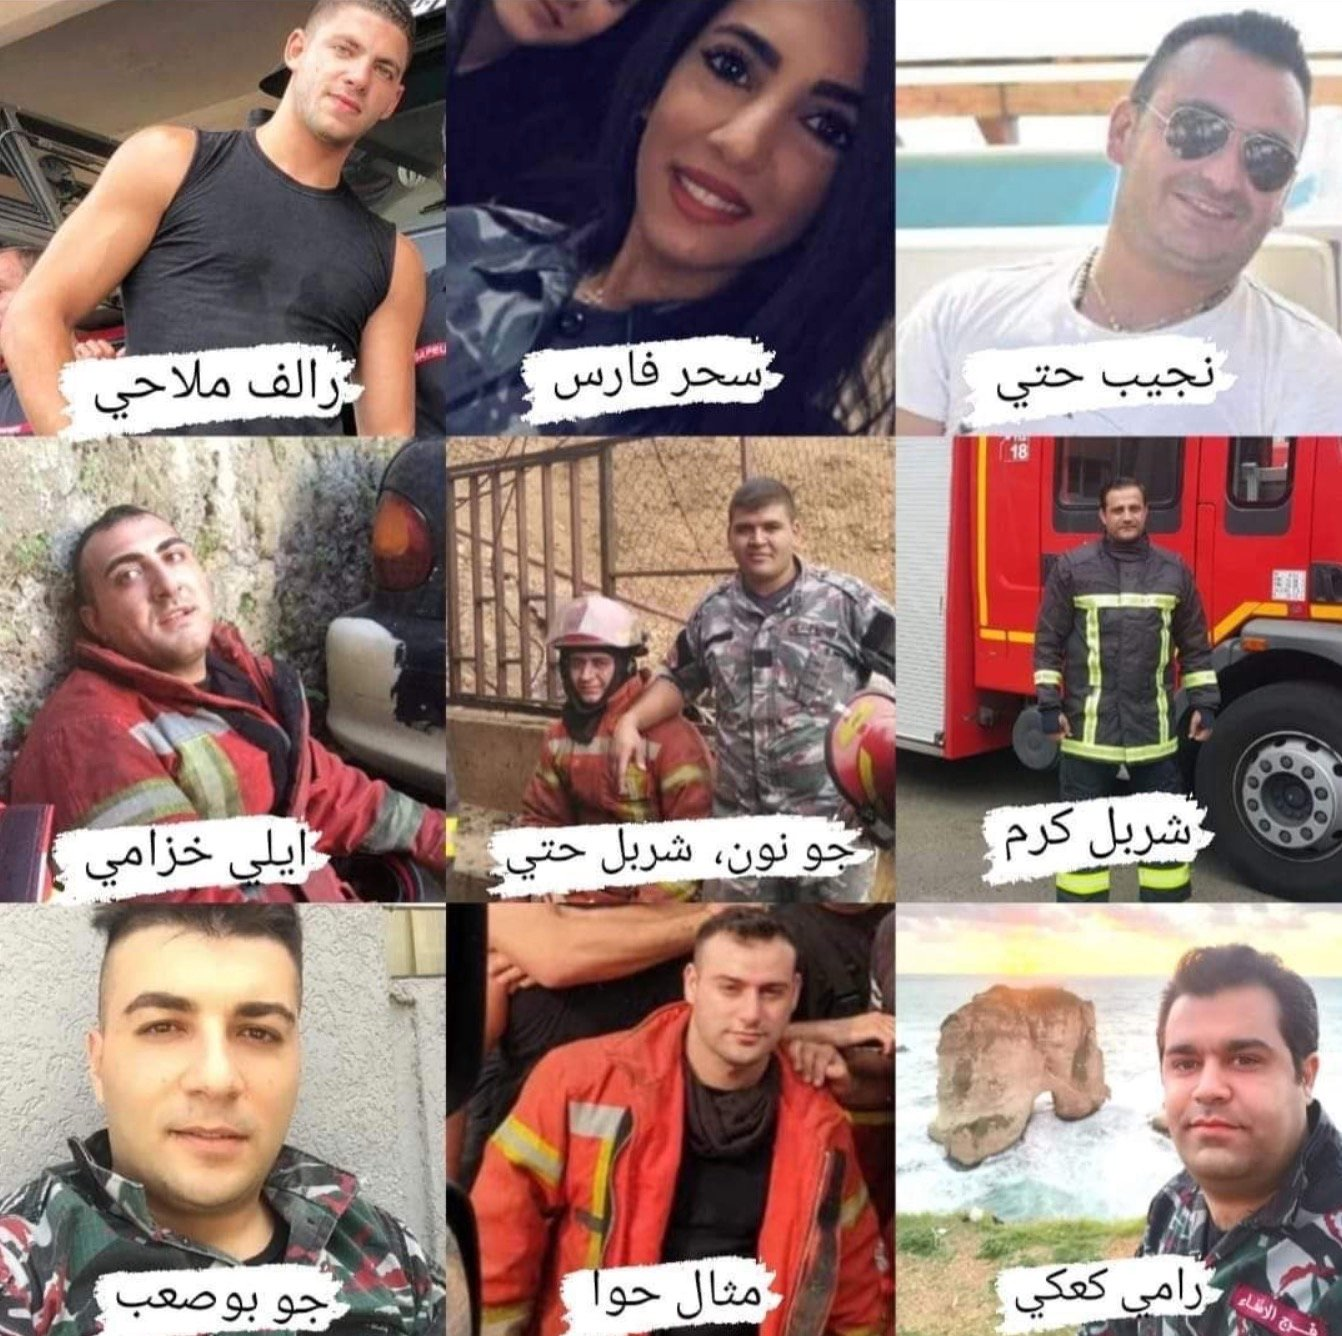 Firefighter victims